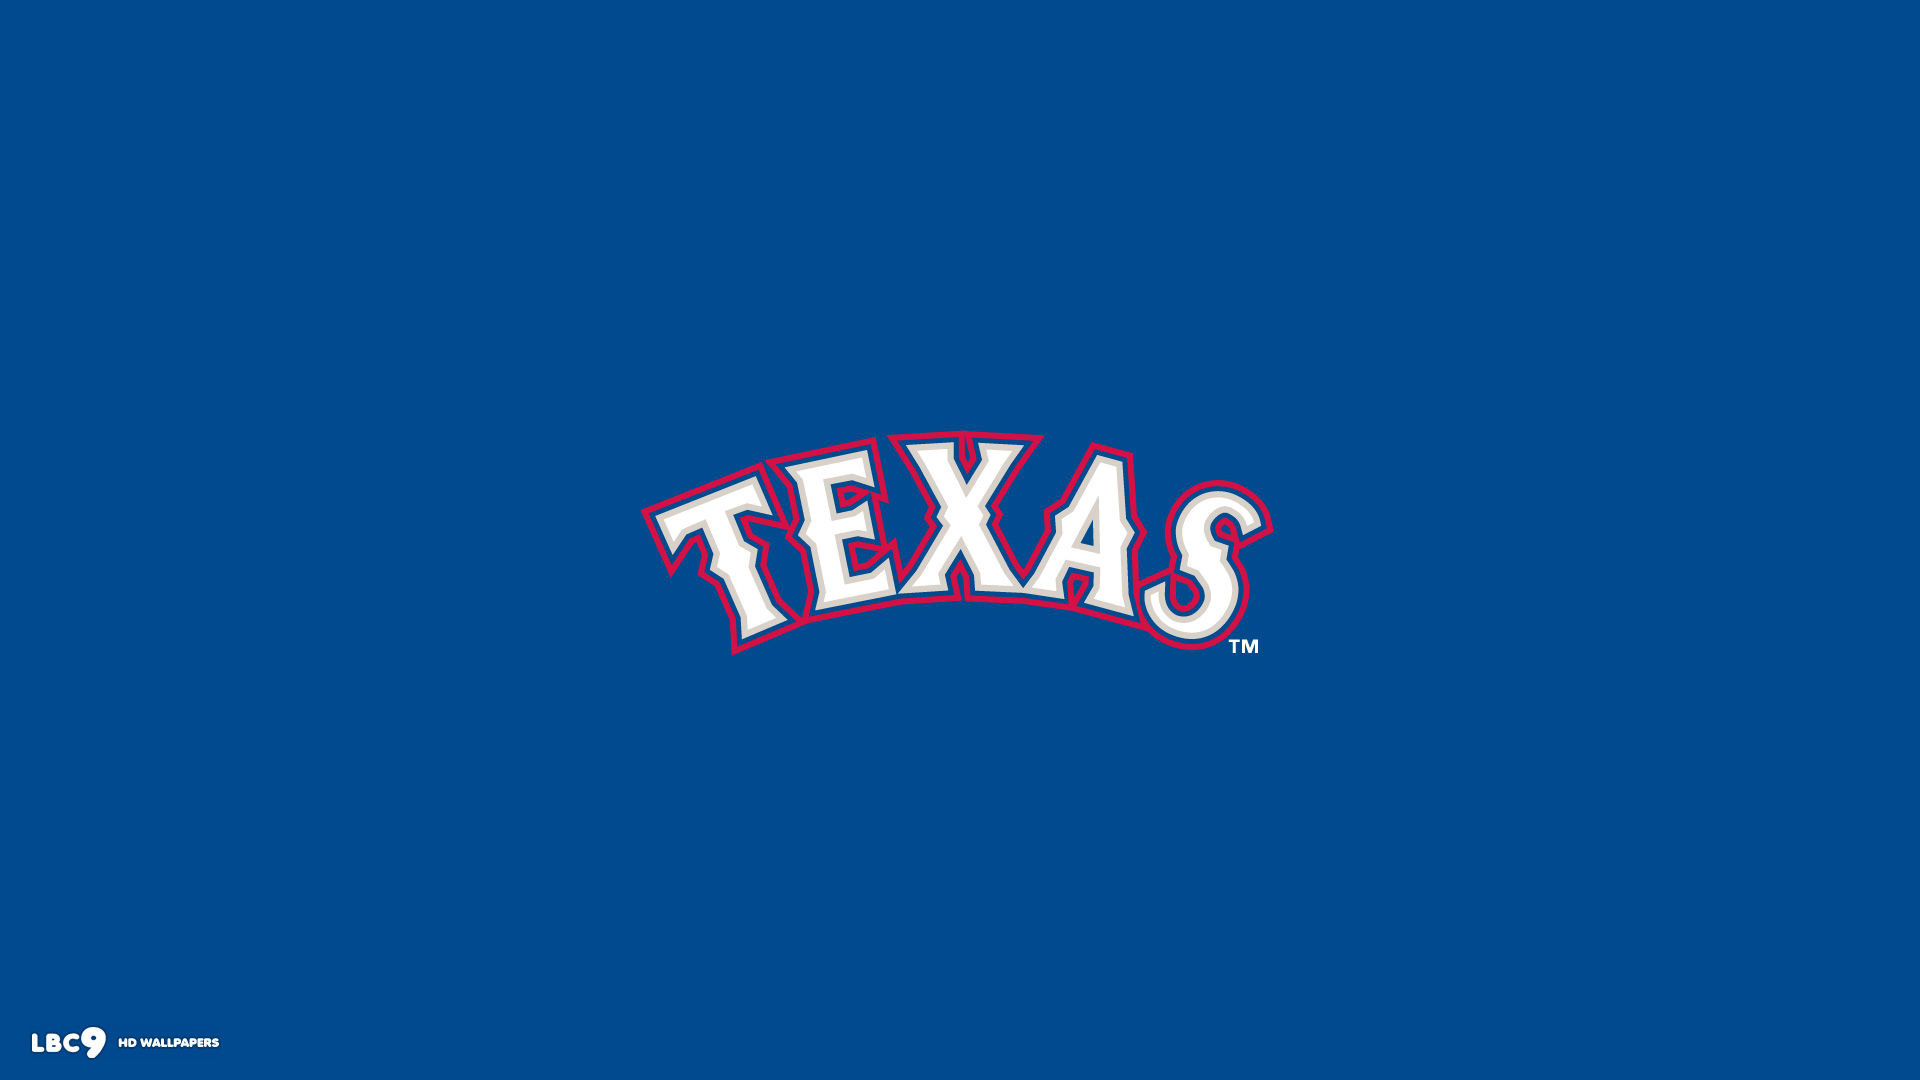 HD Texas Wallpapers Backgrounds images Design Trends | HD Wallpapers |  Pinterest | Texas, Wallpaper and Hd wallpaper